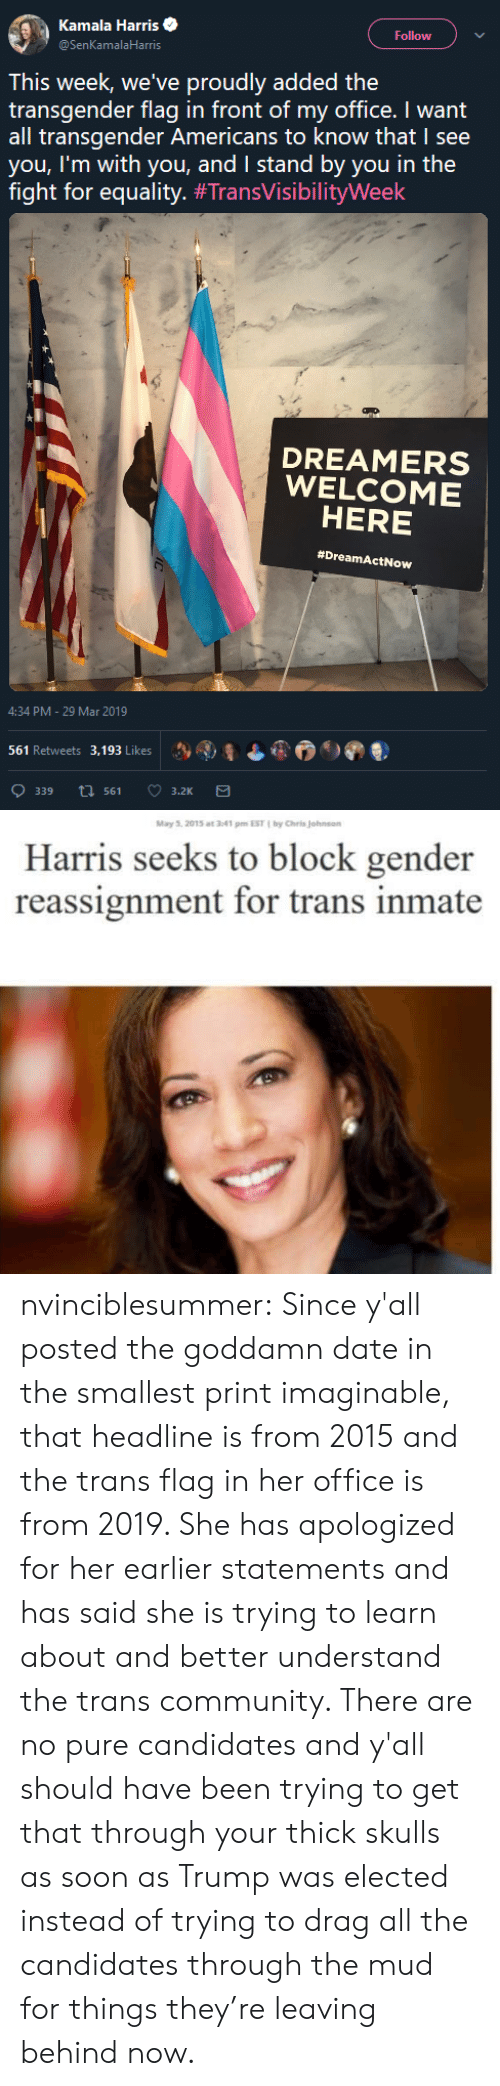 mud: Kamala Harris  @SenKamalaHarris  Follow  This week, we've proudly added the  transgender flag in front of my office. I want  all transgender Americans to know that I see  you, I'm with you, and I stand by you in the  fight for equality. #TransVisibilityWeek  DREAMERS  WELCOME  HERE  #DreamActNow  4:34 PM-29 Mar 2019  Sy AI, ¿ 6.  ) ดู  )  561 Retweets 3. 193 Likes   May 5. 2015 at 341 m EST by Chris Johnson  Harris seeks to block gender  reassignment for trans inmate nvinciblesummer: Since y'all posted the goddamn date in the smallest print imaginable, that headline is from 2015 and the trans flag in her office is from 2019. She has apologized for her earlier statements and has said she is trying to learn about and better understand the trans community. There are no pure candidates and y'all should have been trying to get that through your thick skulls as soon as Trump was elected instead of trying to drag all the candidates through the mud for things they're leaving behind now.